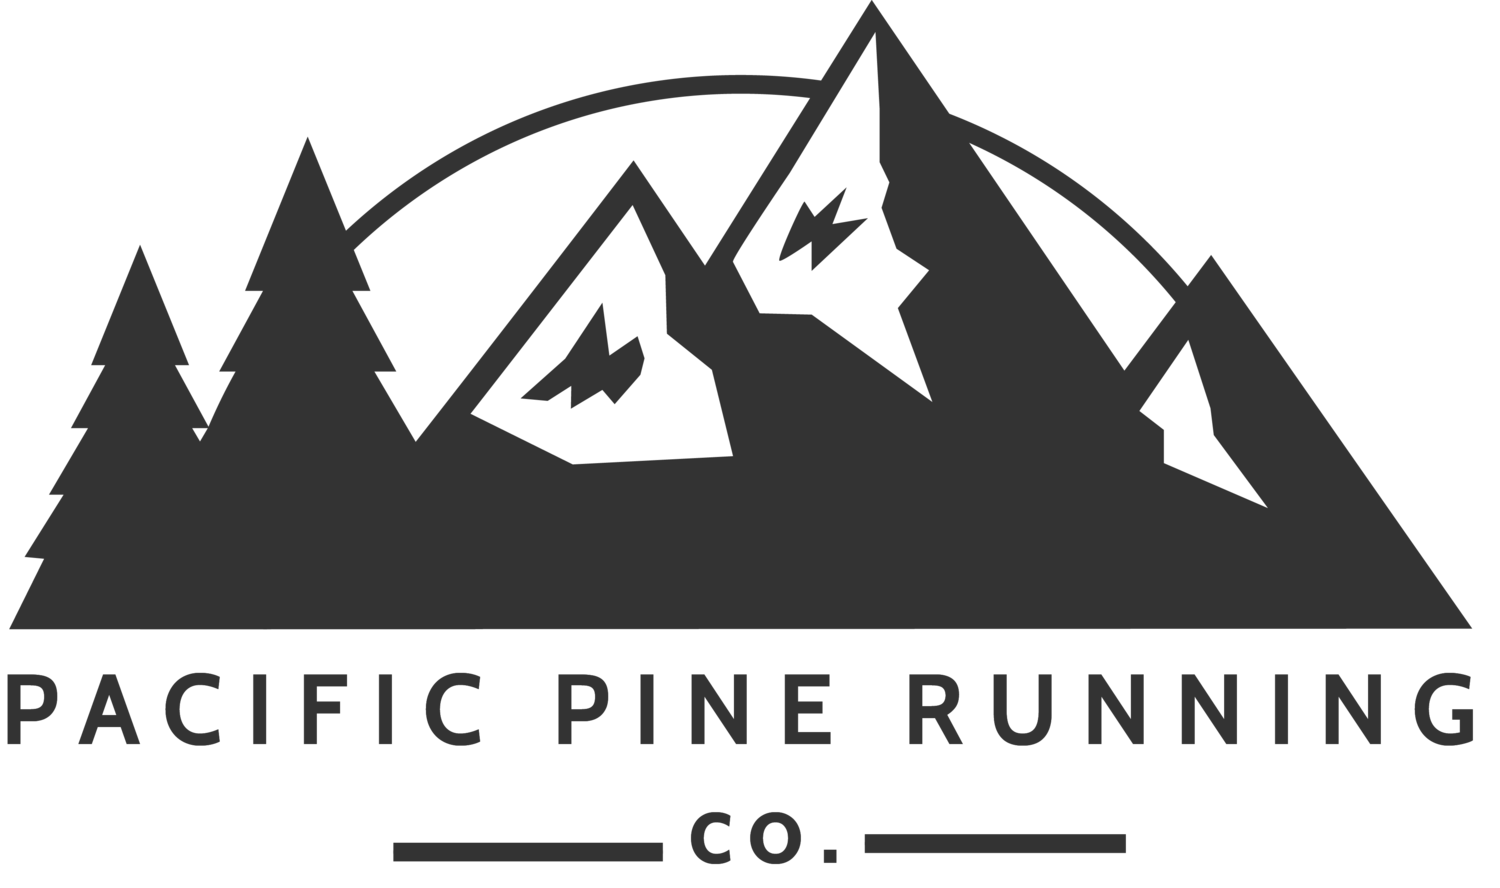 Pacific Pine Running Co.